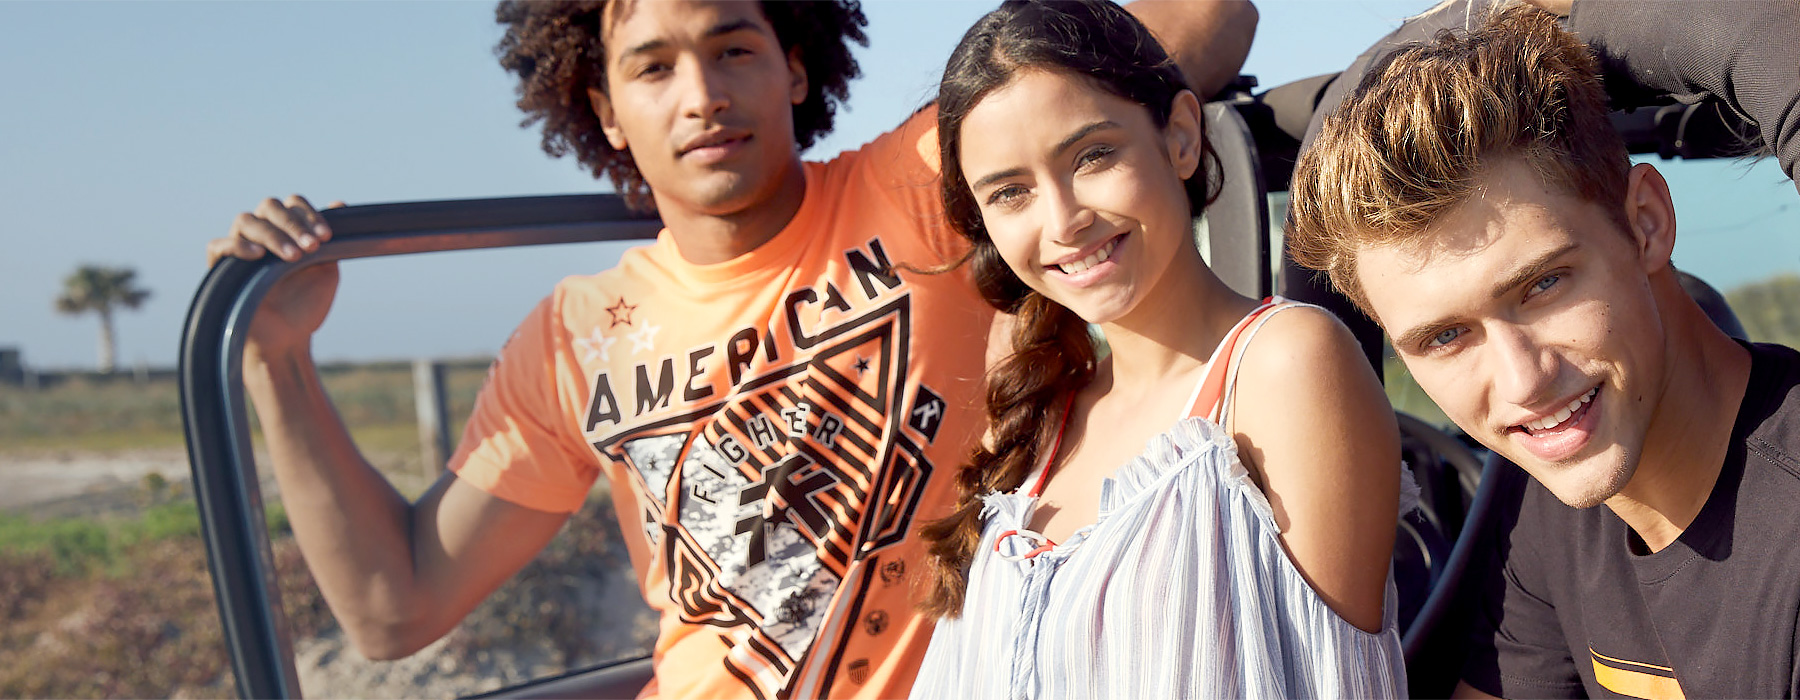 Guy wearing an orange American Fighter short sleeve t-shirt. Girl wearing a blue cold shoulder top and guy wearing a black short sleeve t-shirt.